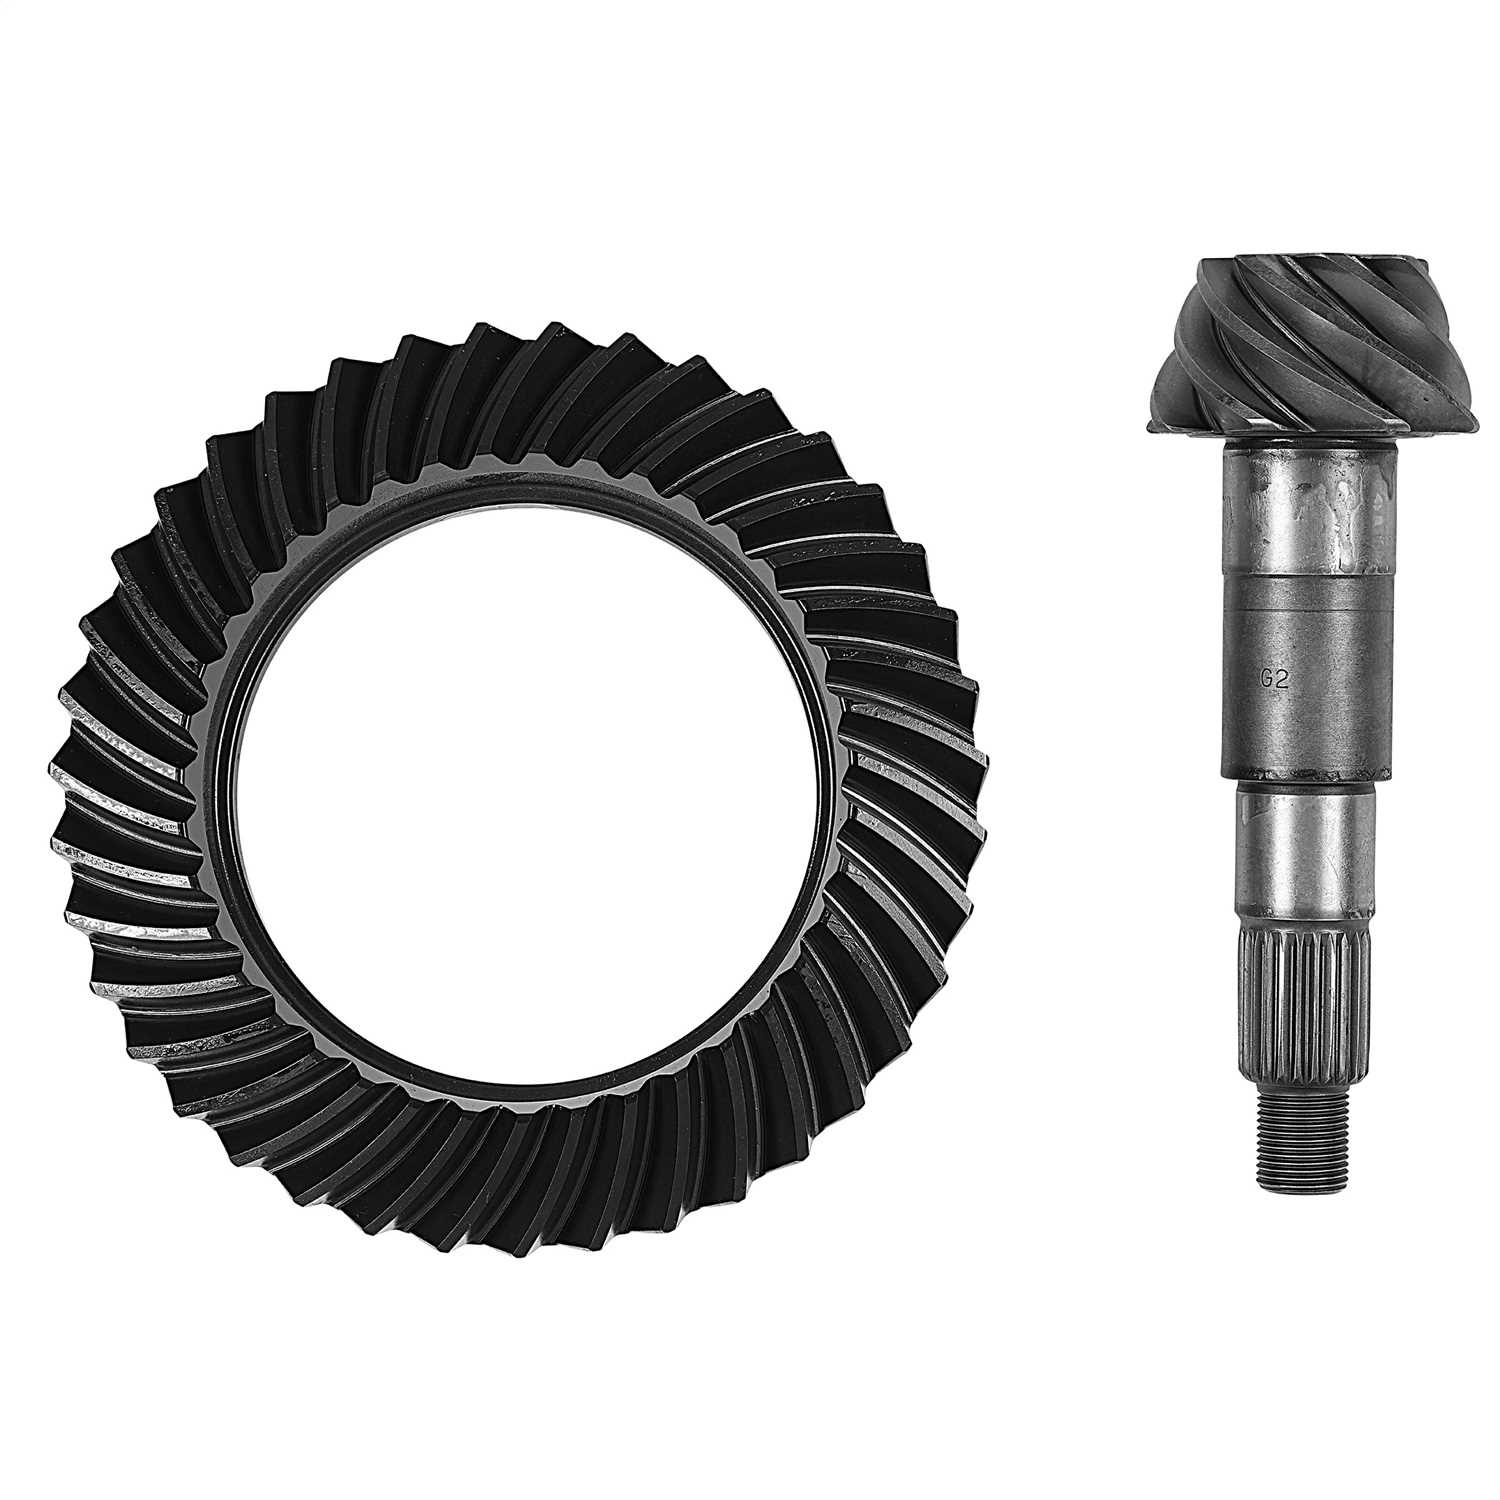 1-2152-456 G2 Axle and Gear Ring and Pinion Set